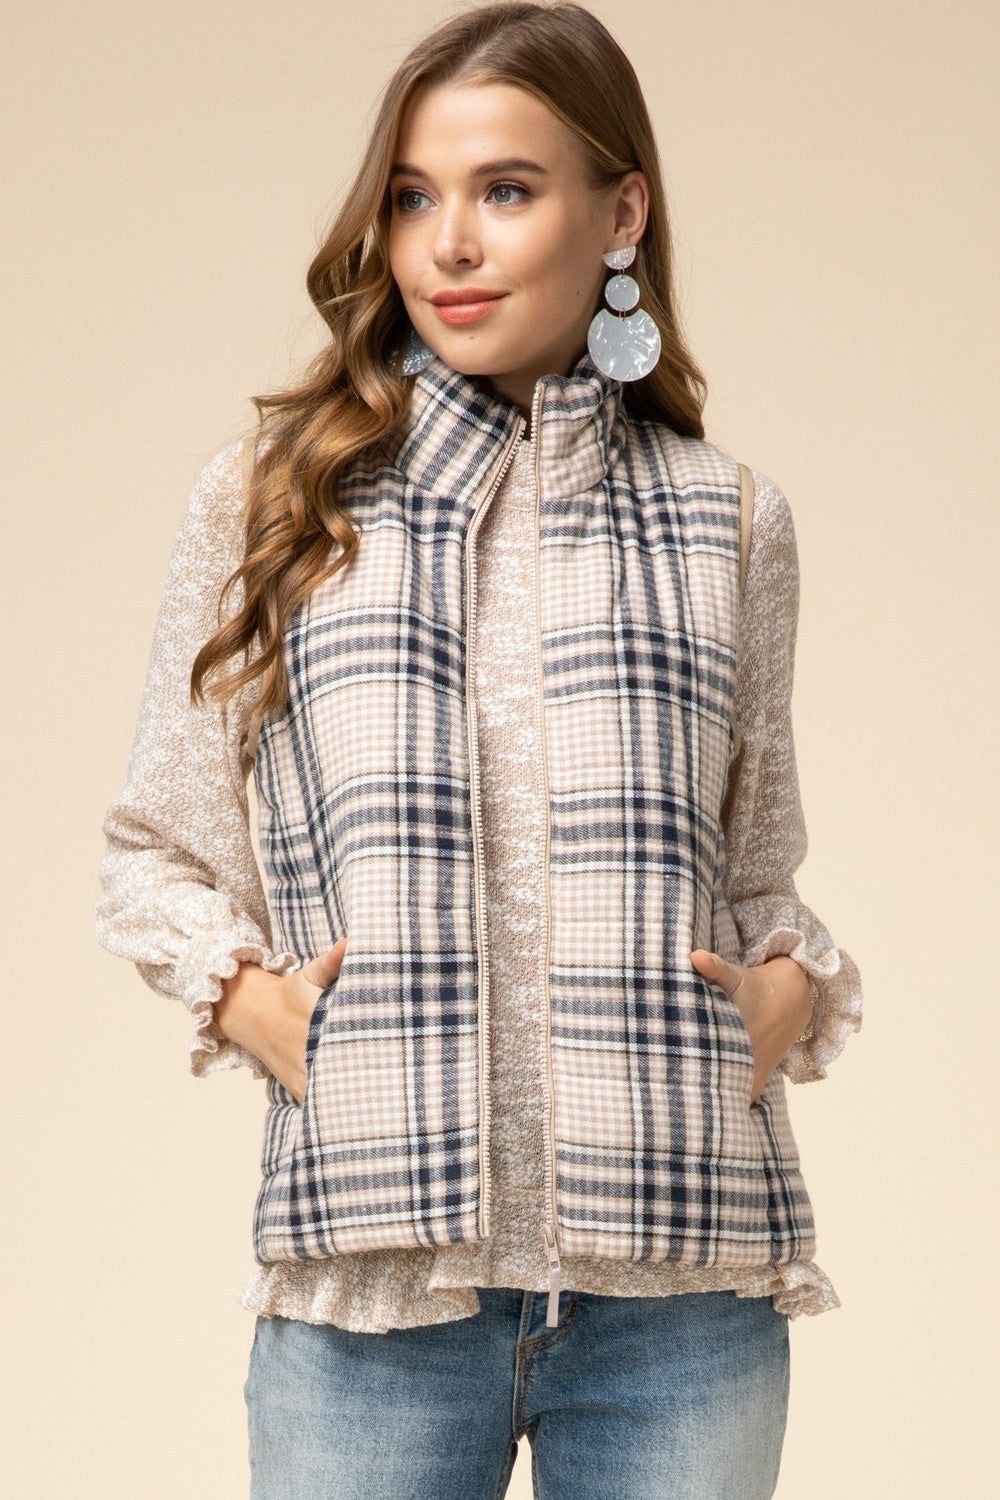 Plaid Puffer Vest In Taupe-[option4]-[option5]-[option6]-[option7]-[option8]-Womens-Clothing-Shop